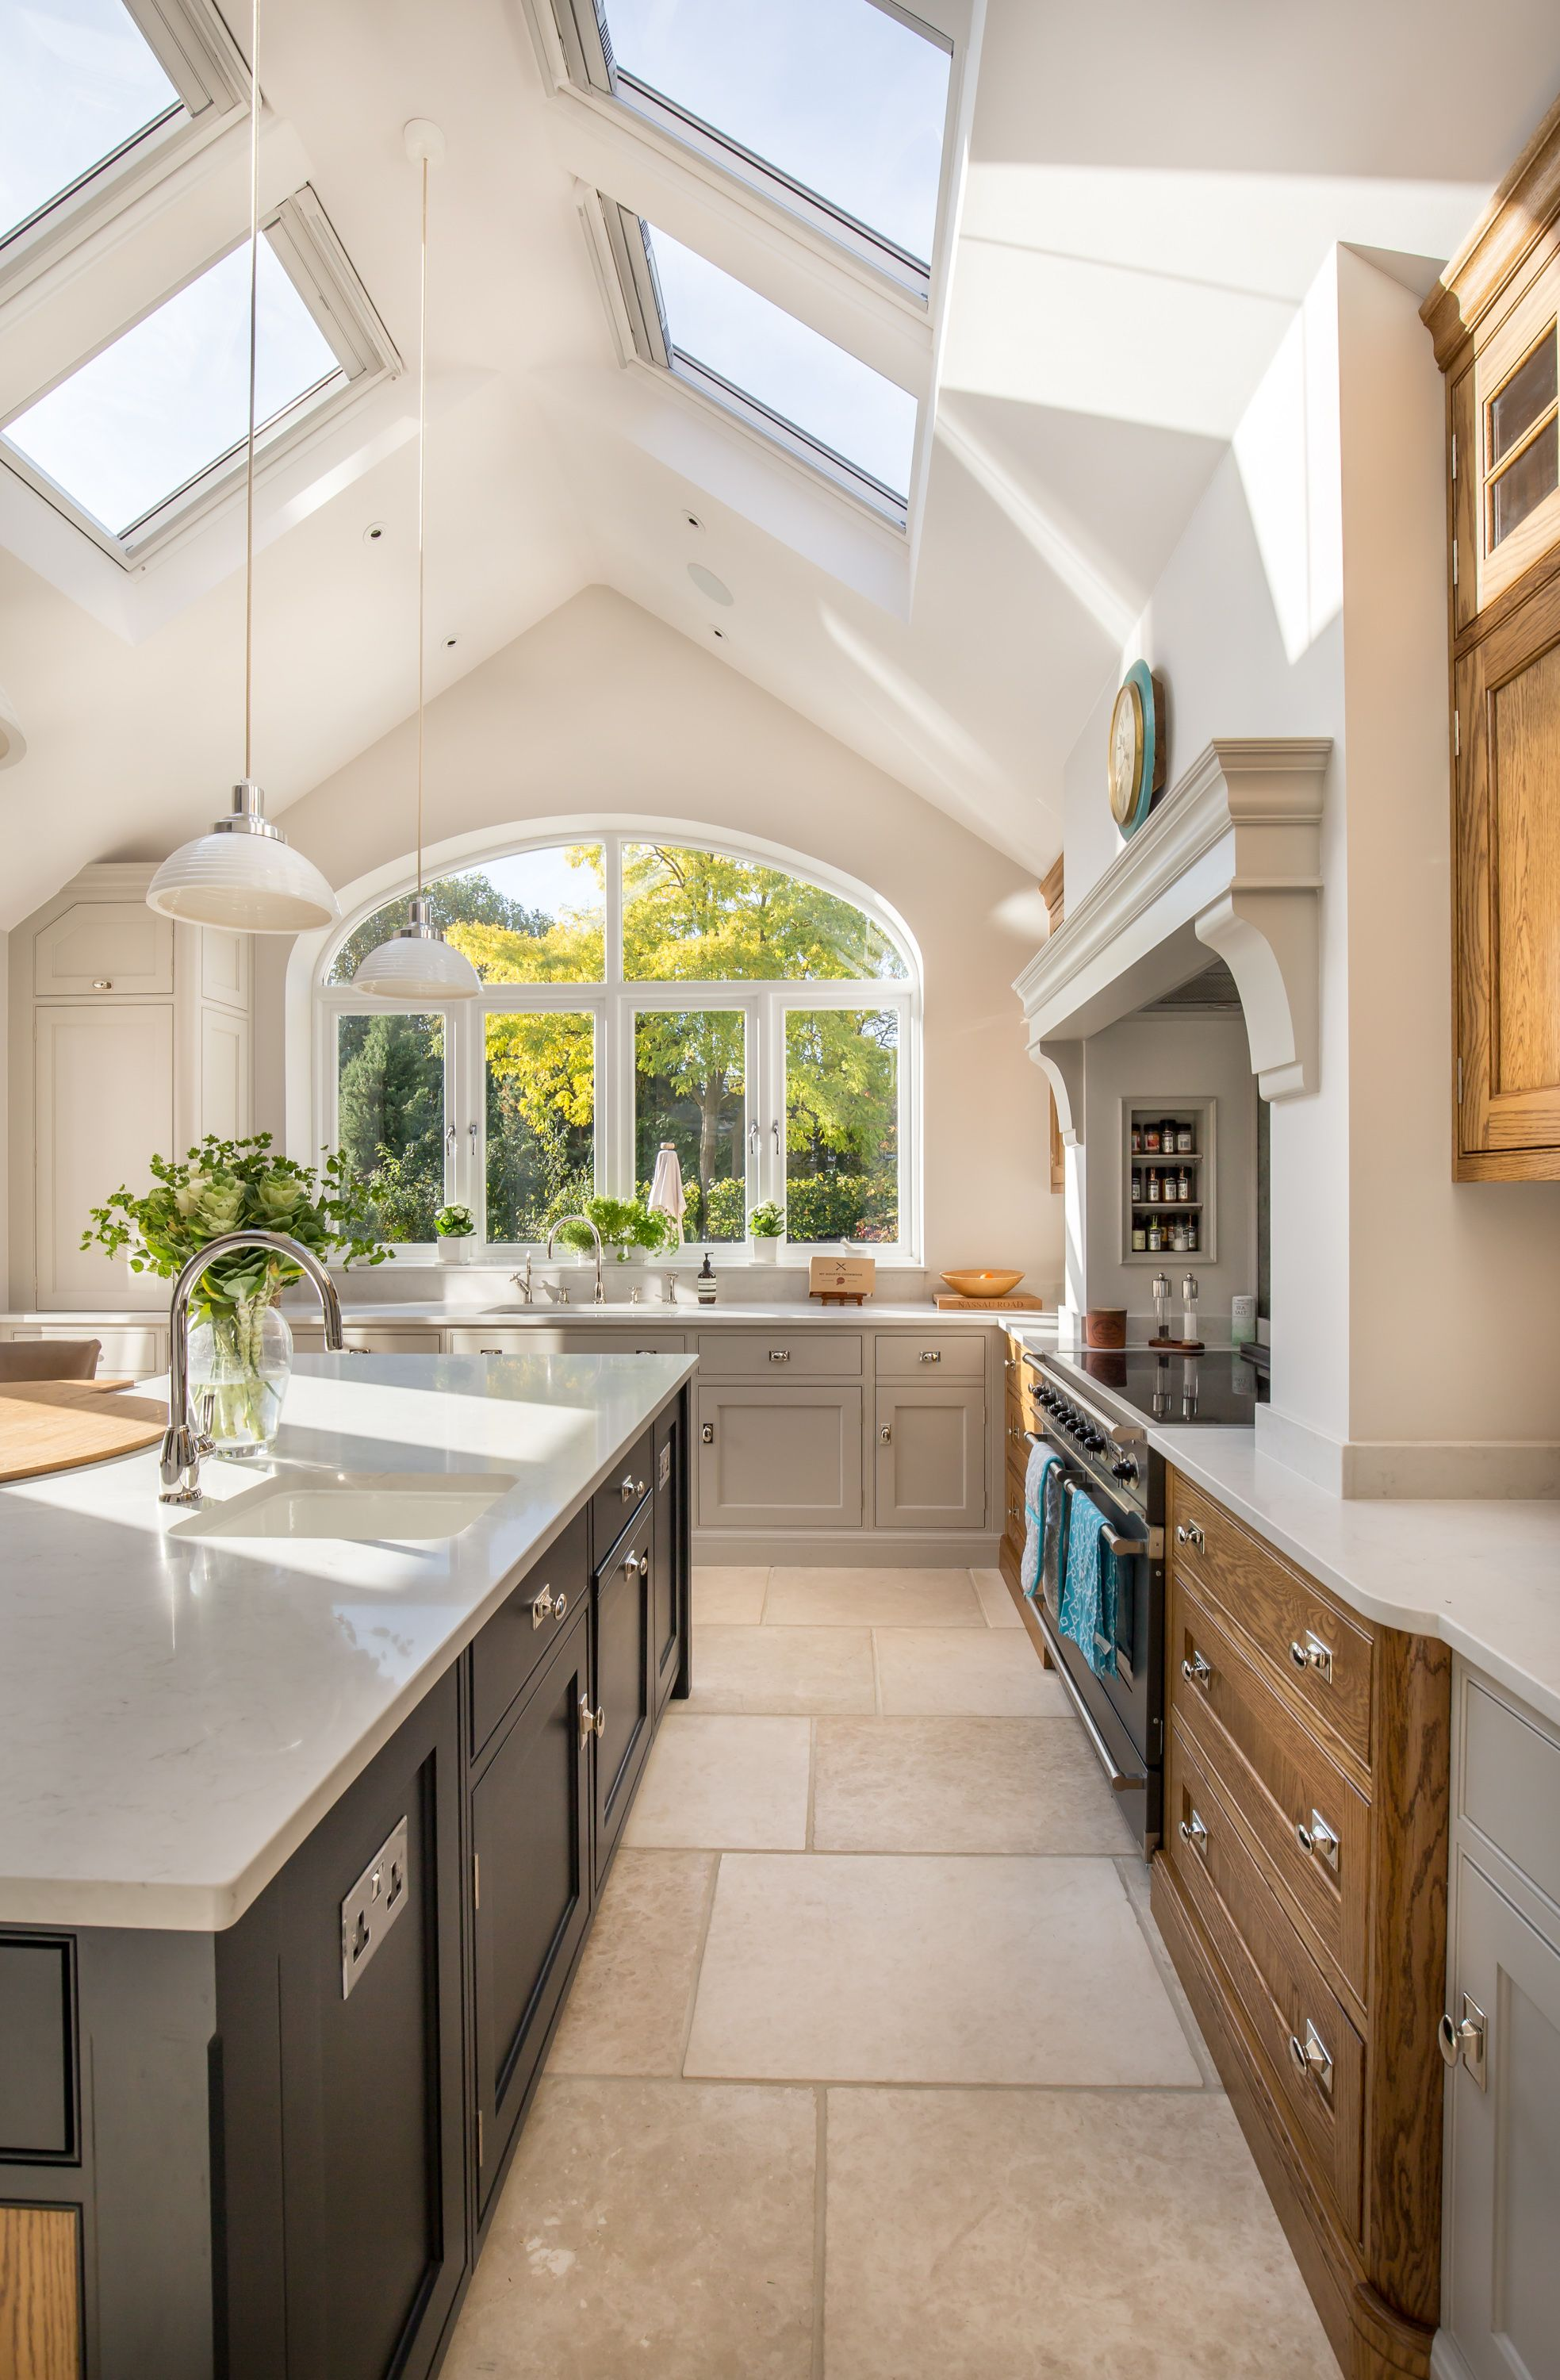 Stunning Kitchen Extension With Pitched Roof, Vaulted Ceiling And Velux  Rooflights